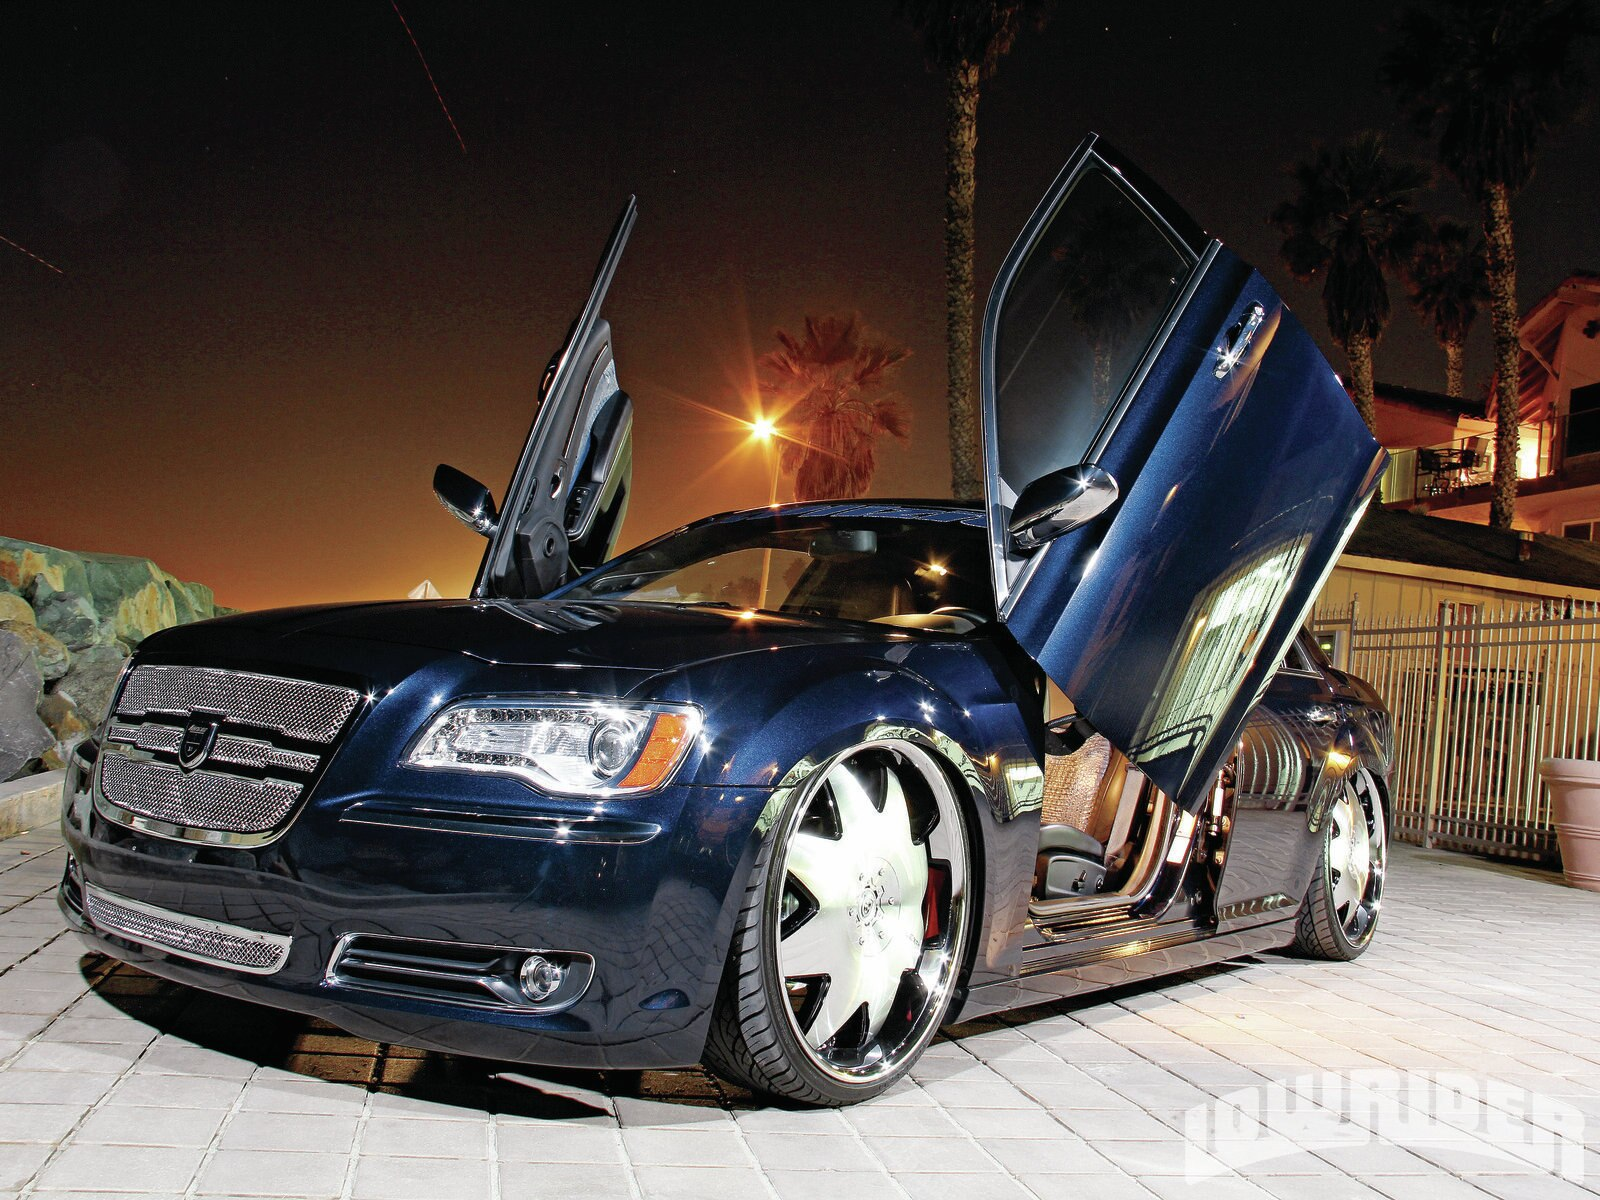 1207-lrmp-01-o-2011-chrysler-300-lambo-doors1